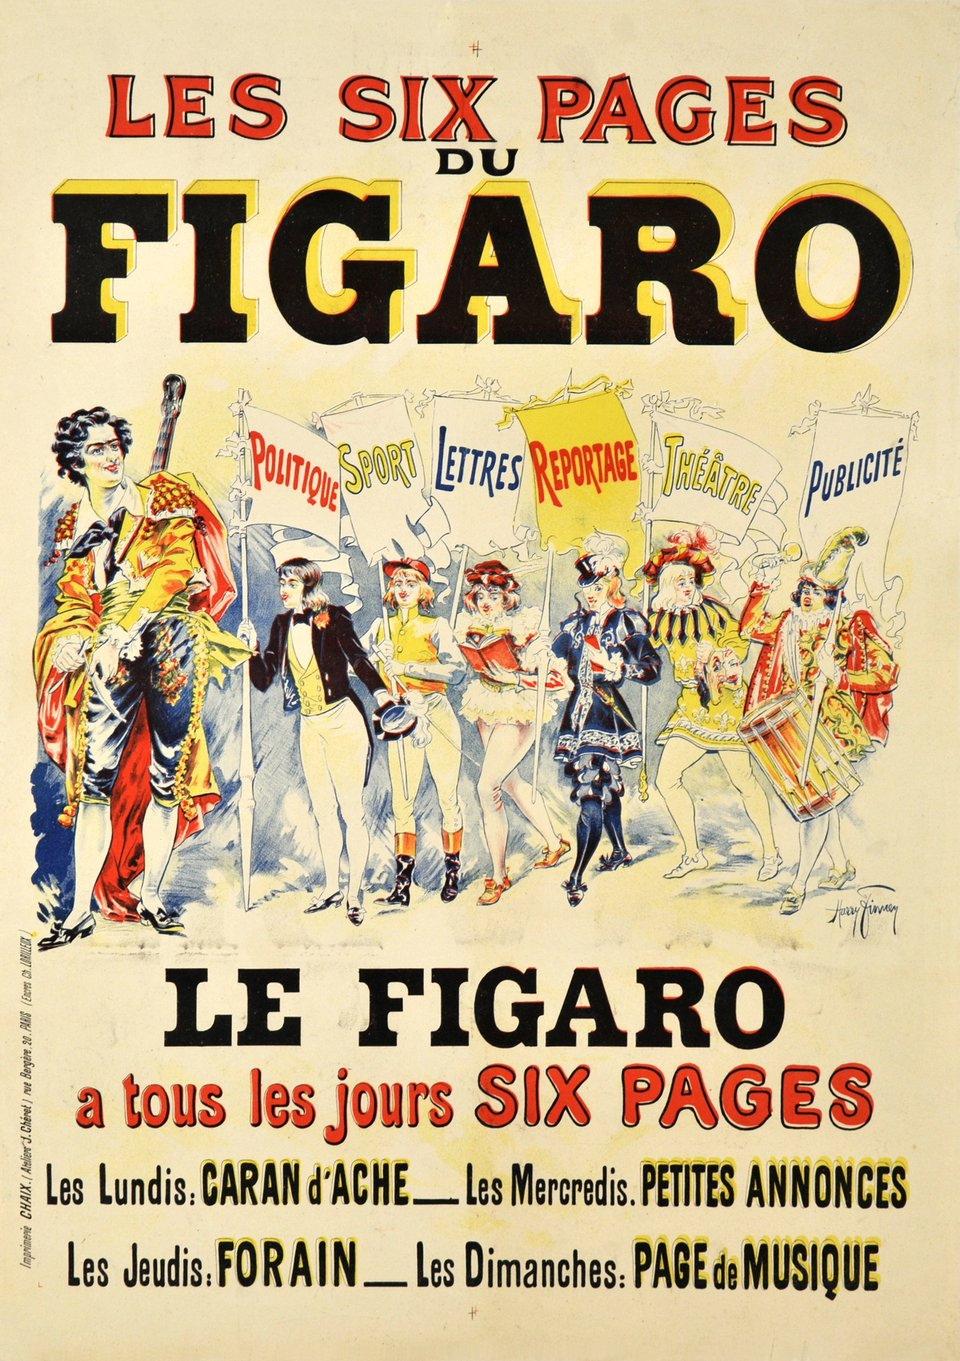 Les six pages du Figaro – Affiche ancienne – Harry FINNEN – 1900